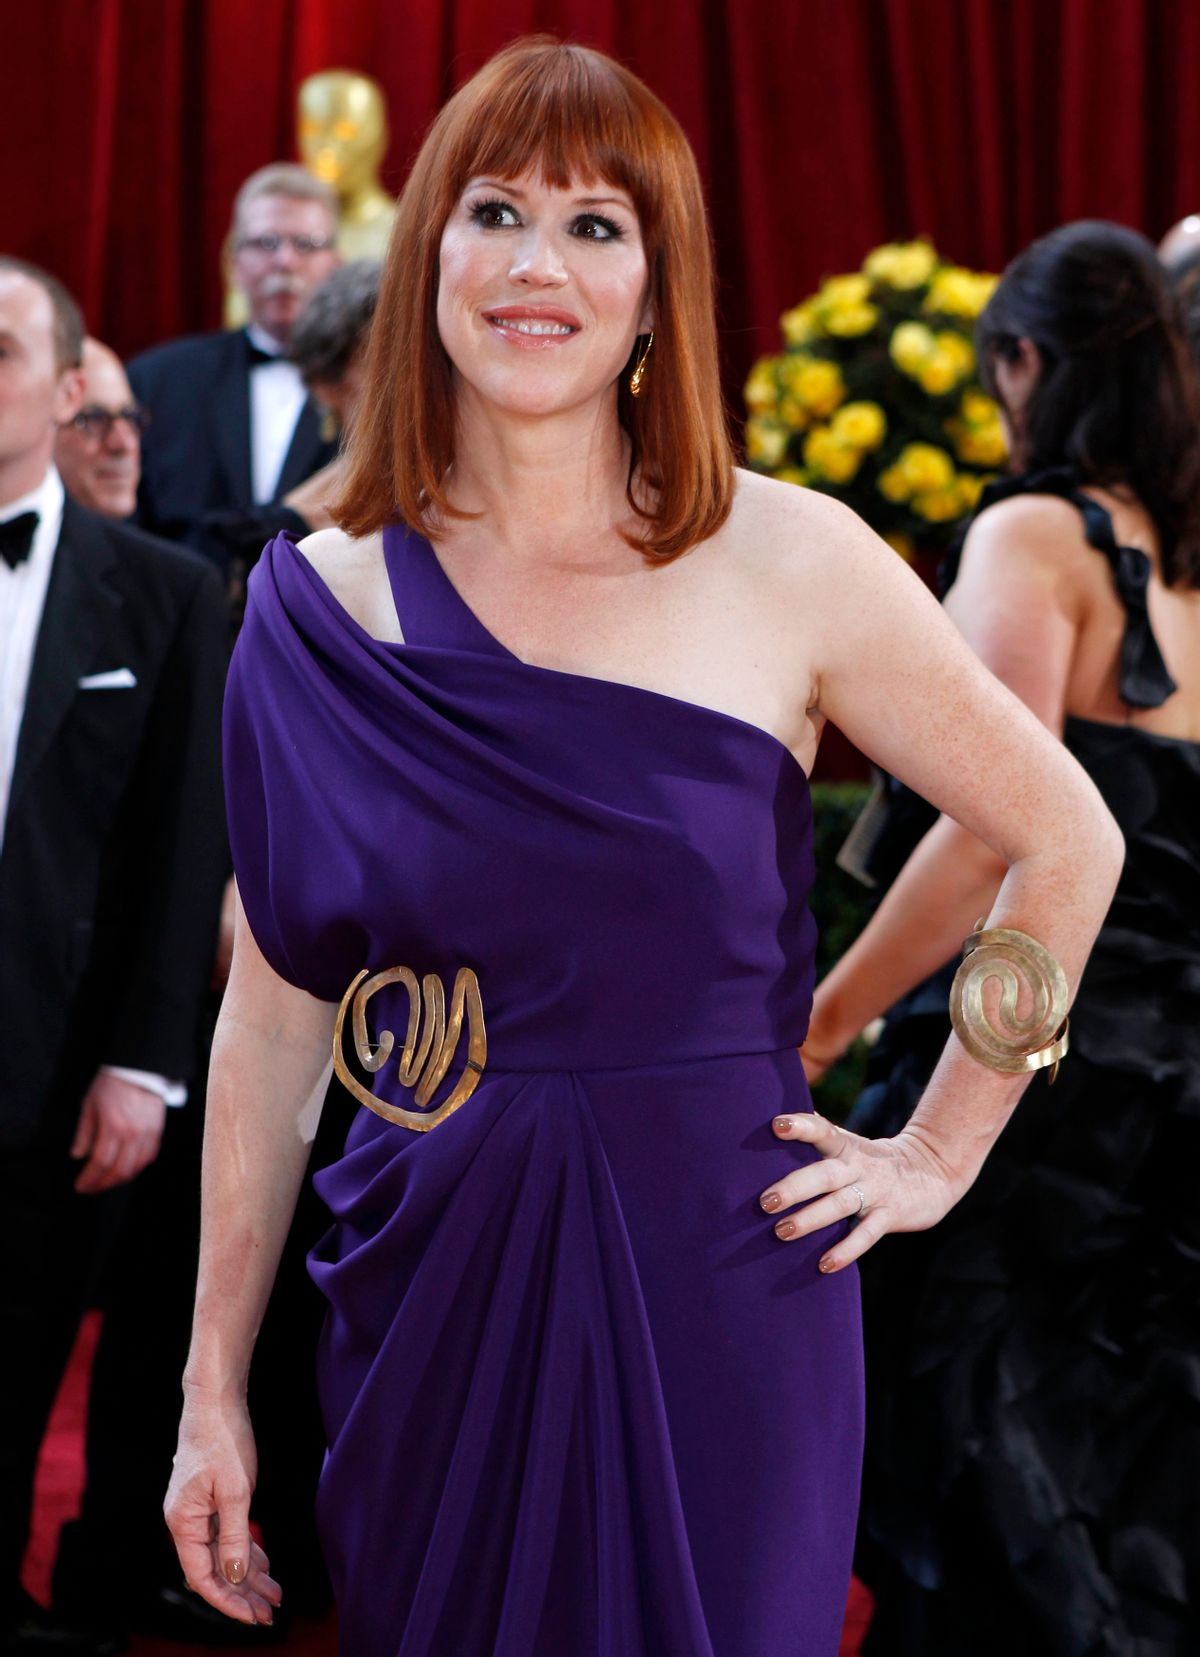 Actress Molly Ringwald arrives at the 82nd Academy Awards in Hollywood March 7, 2010.   REUTERS/Lucas Jackson   (UNITED STATES)   (OSCARS-ARRIVALS - Tags: ENTERTAINMENT)     (Reuters)